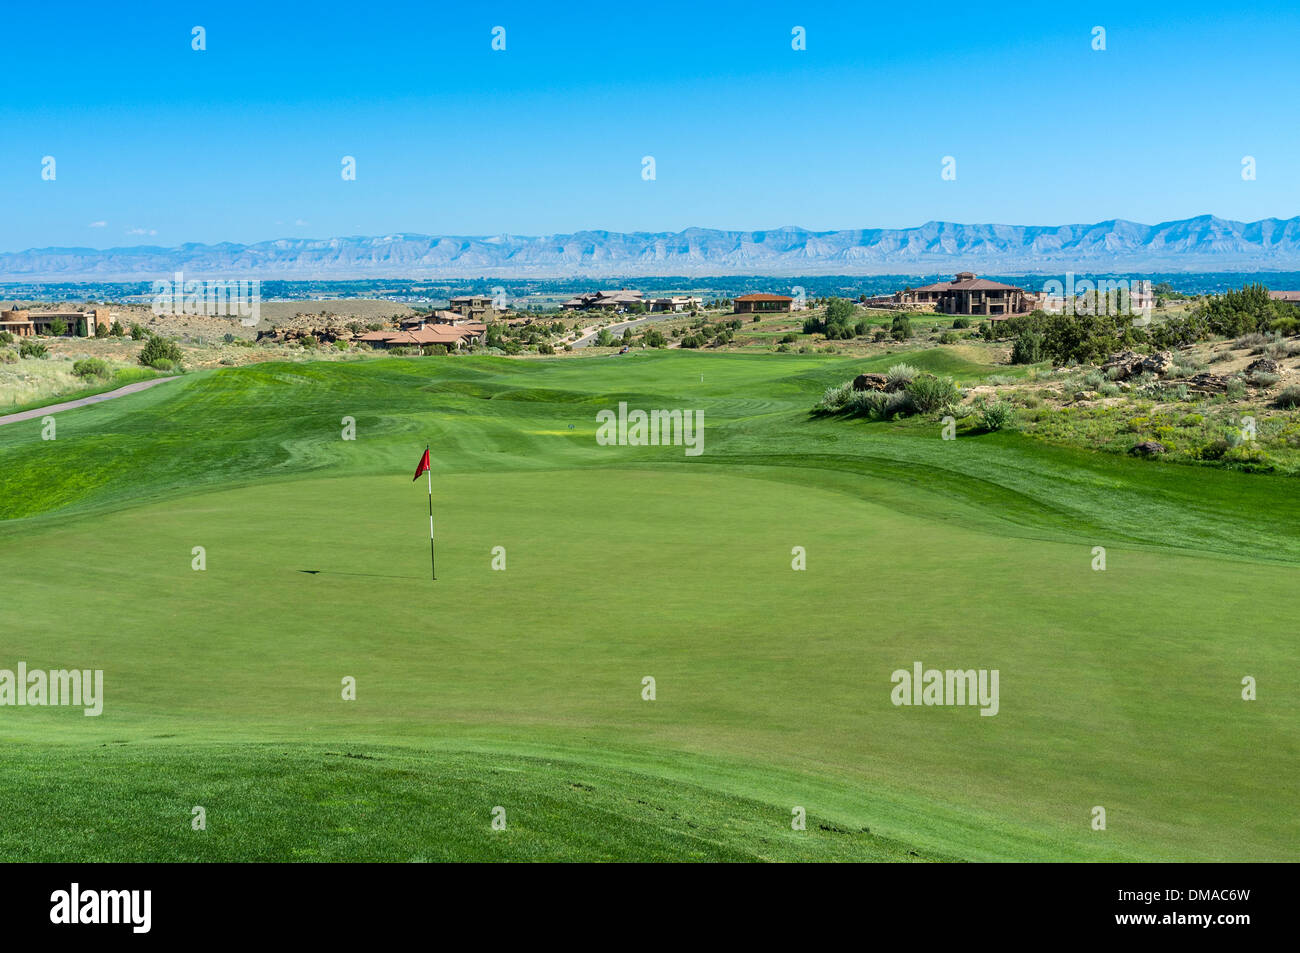 First green and fairway at Redlands Mesa Golf Club, Grand Junction, Colorado, USA - Stock Image